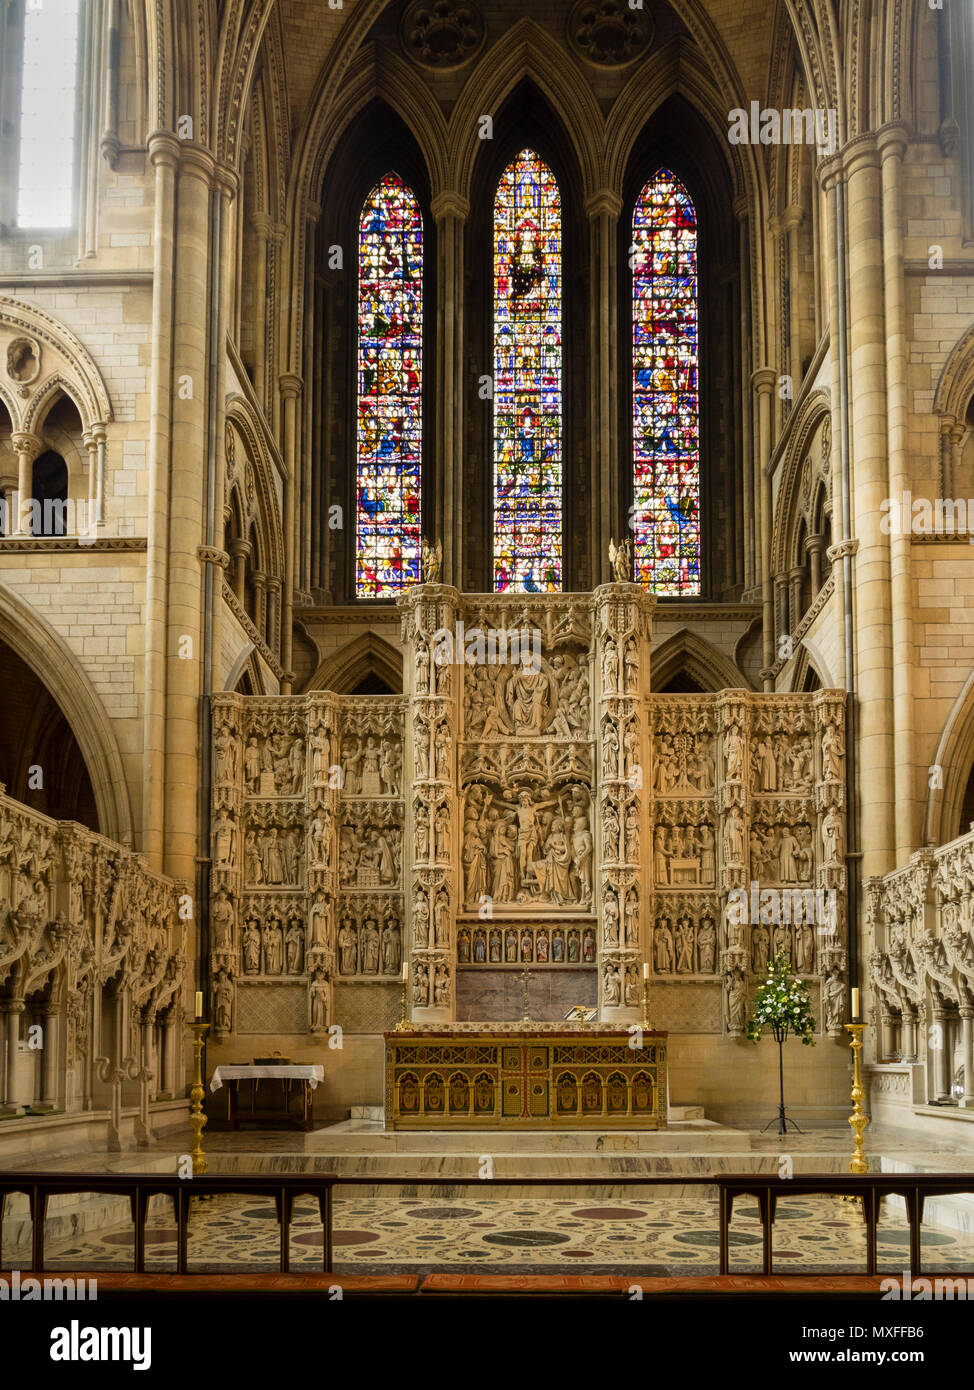 Altar and intricately carved reredos below the stained glass window of the Victorian Truro Cathedral, Cornwall, UK - Stock Image